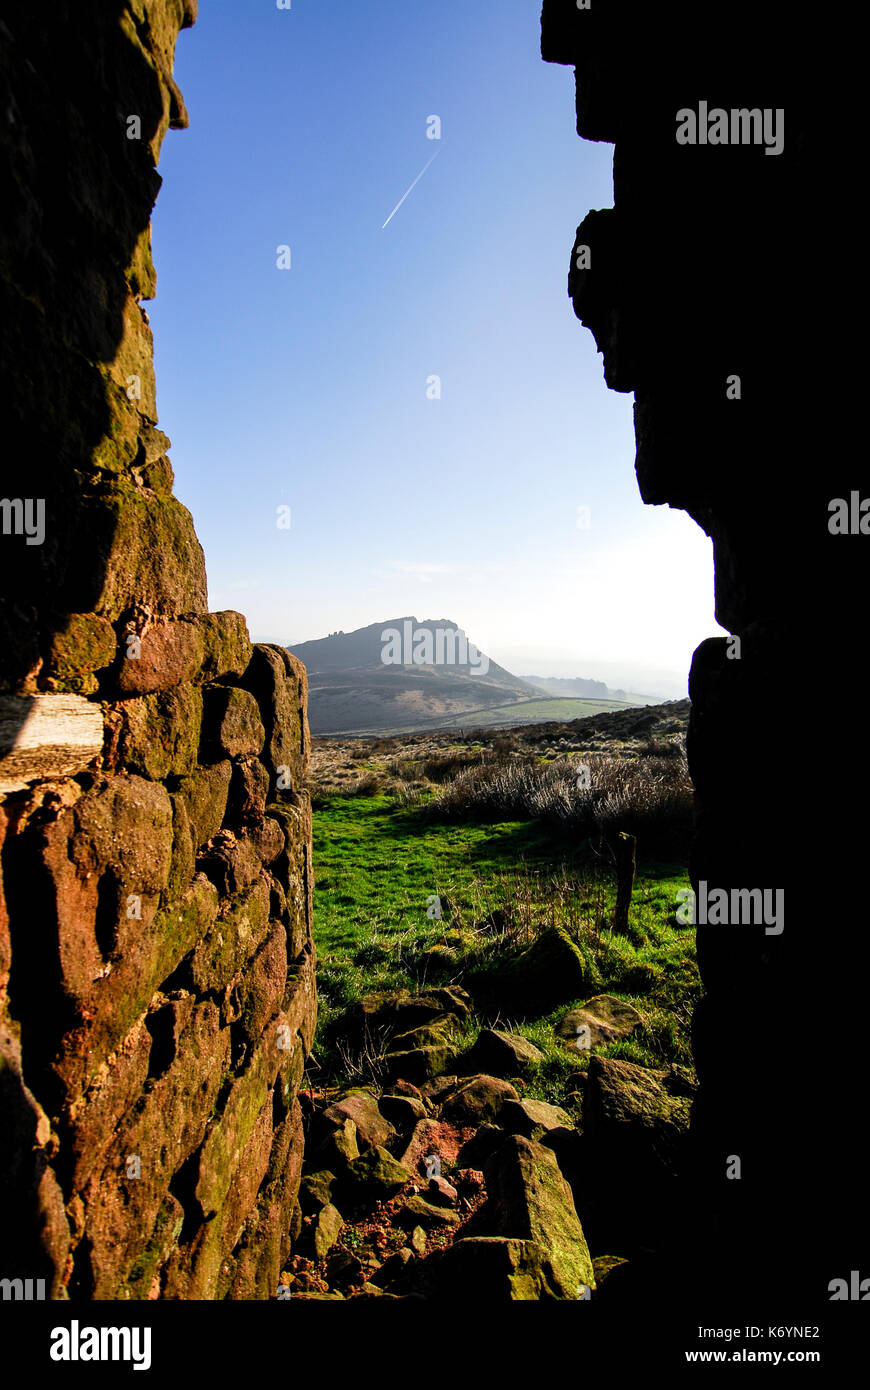 The Roaches, Abandoned House/Farm, Moorland, The Peak District National Park, UK - Stock Image